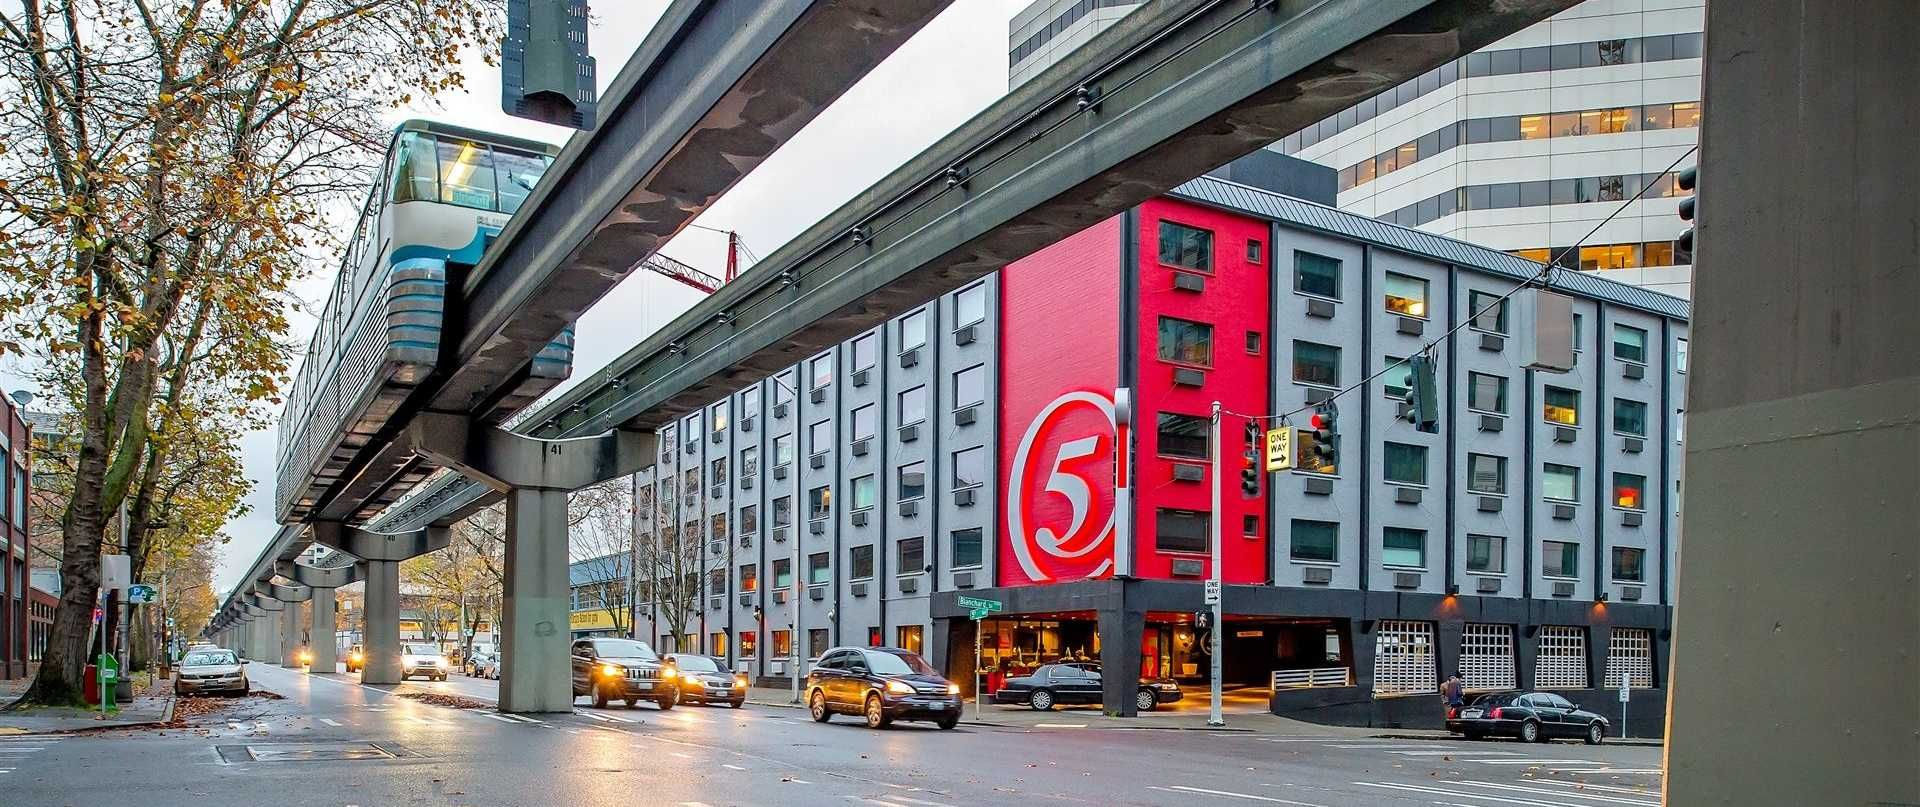 Hotel Five Is A Boutique Located In The Heart Of Downtown Seattle Wa Walk To Pike Place Market Or E Needle